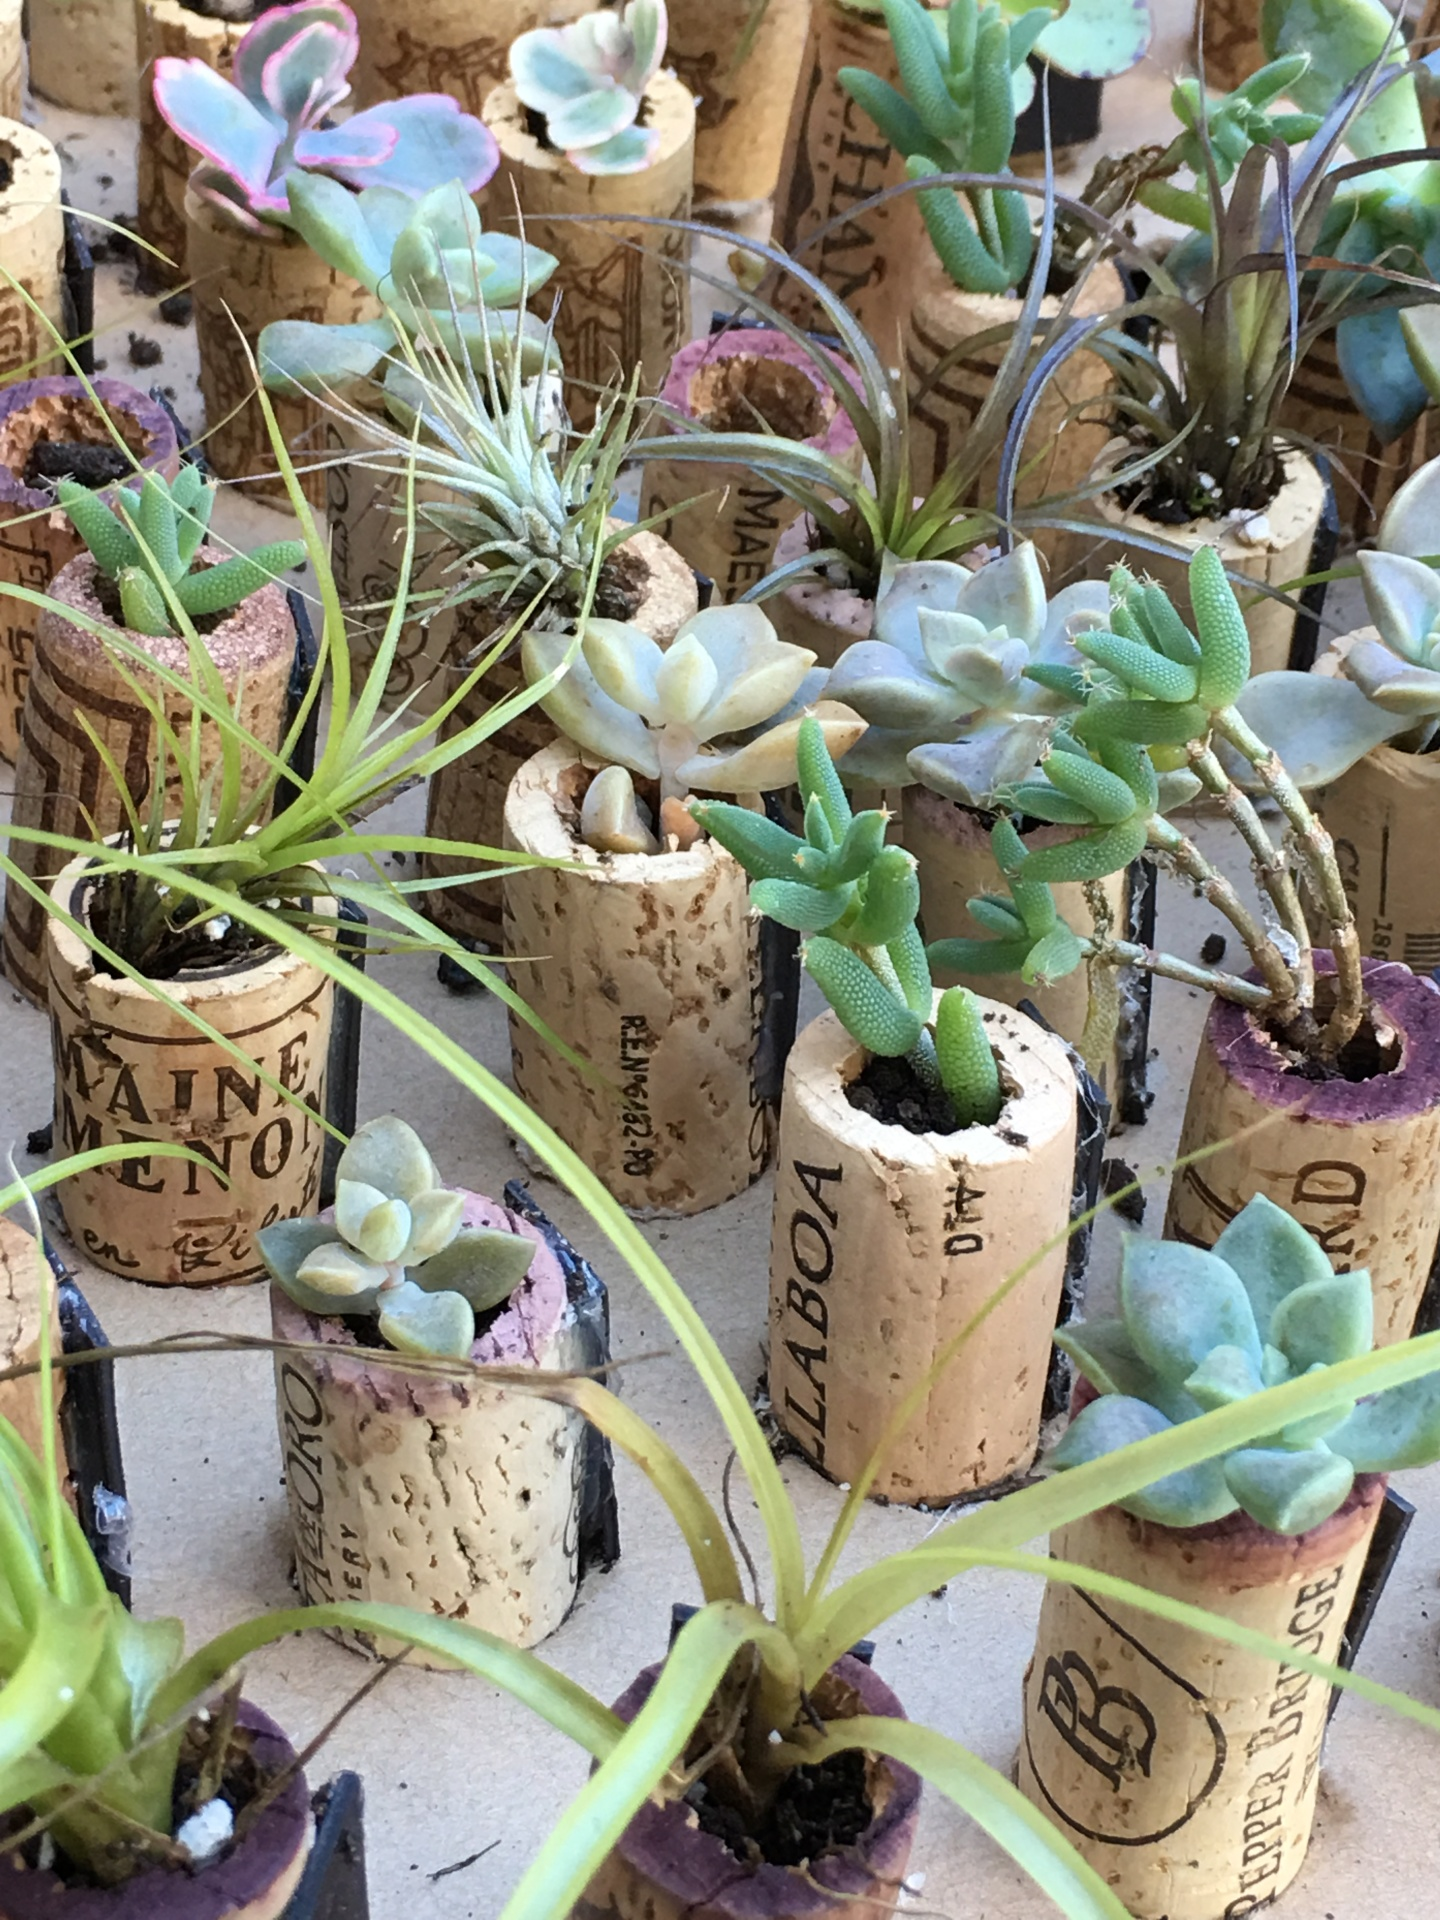 Living Succulent in a cork.